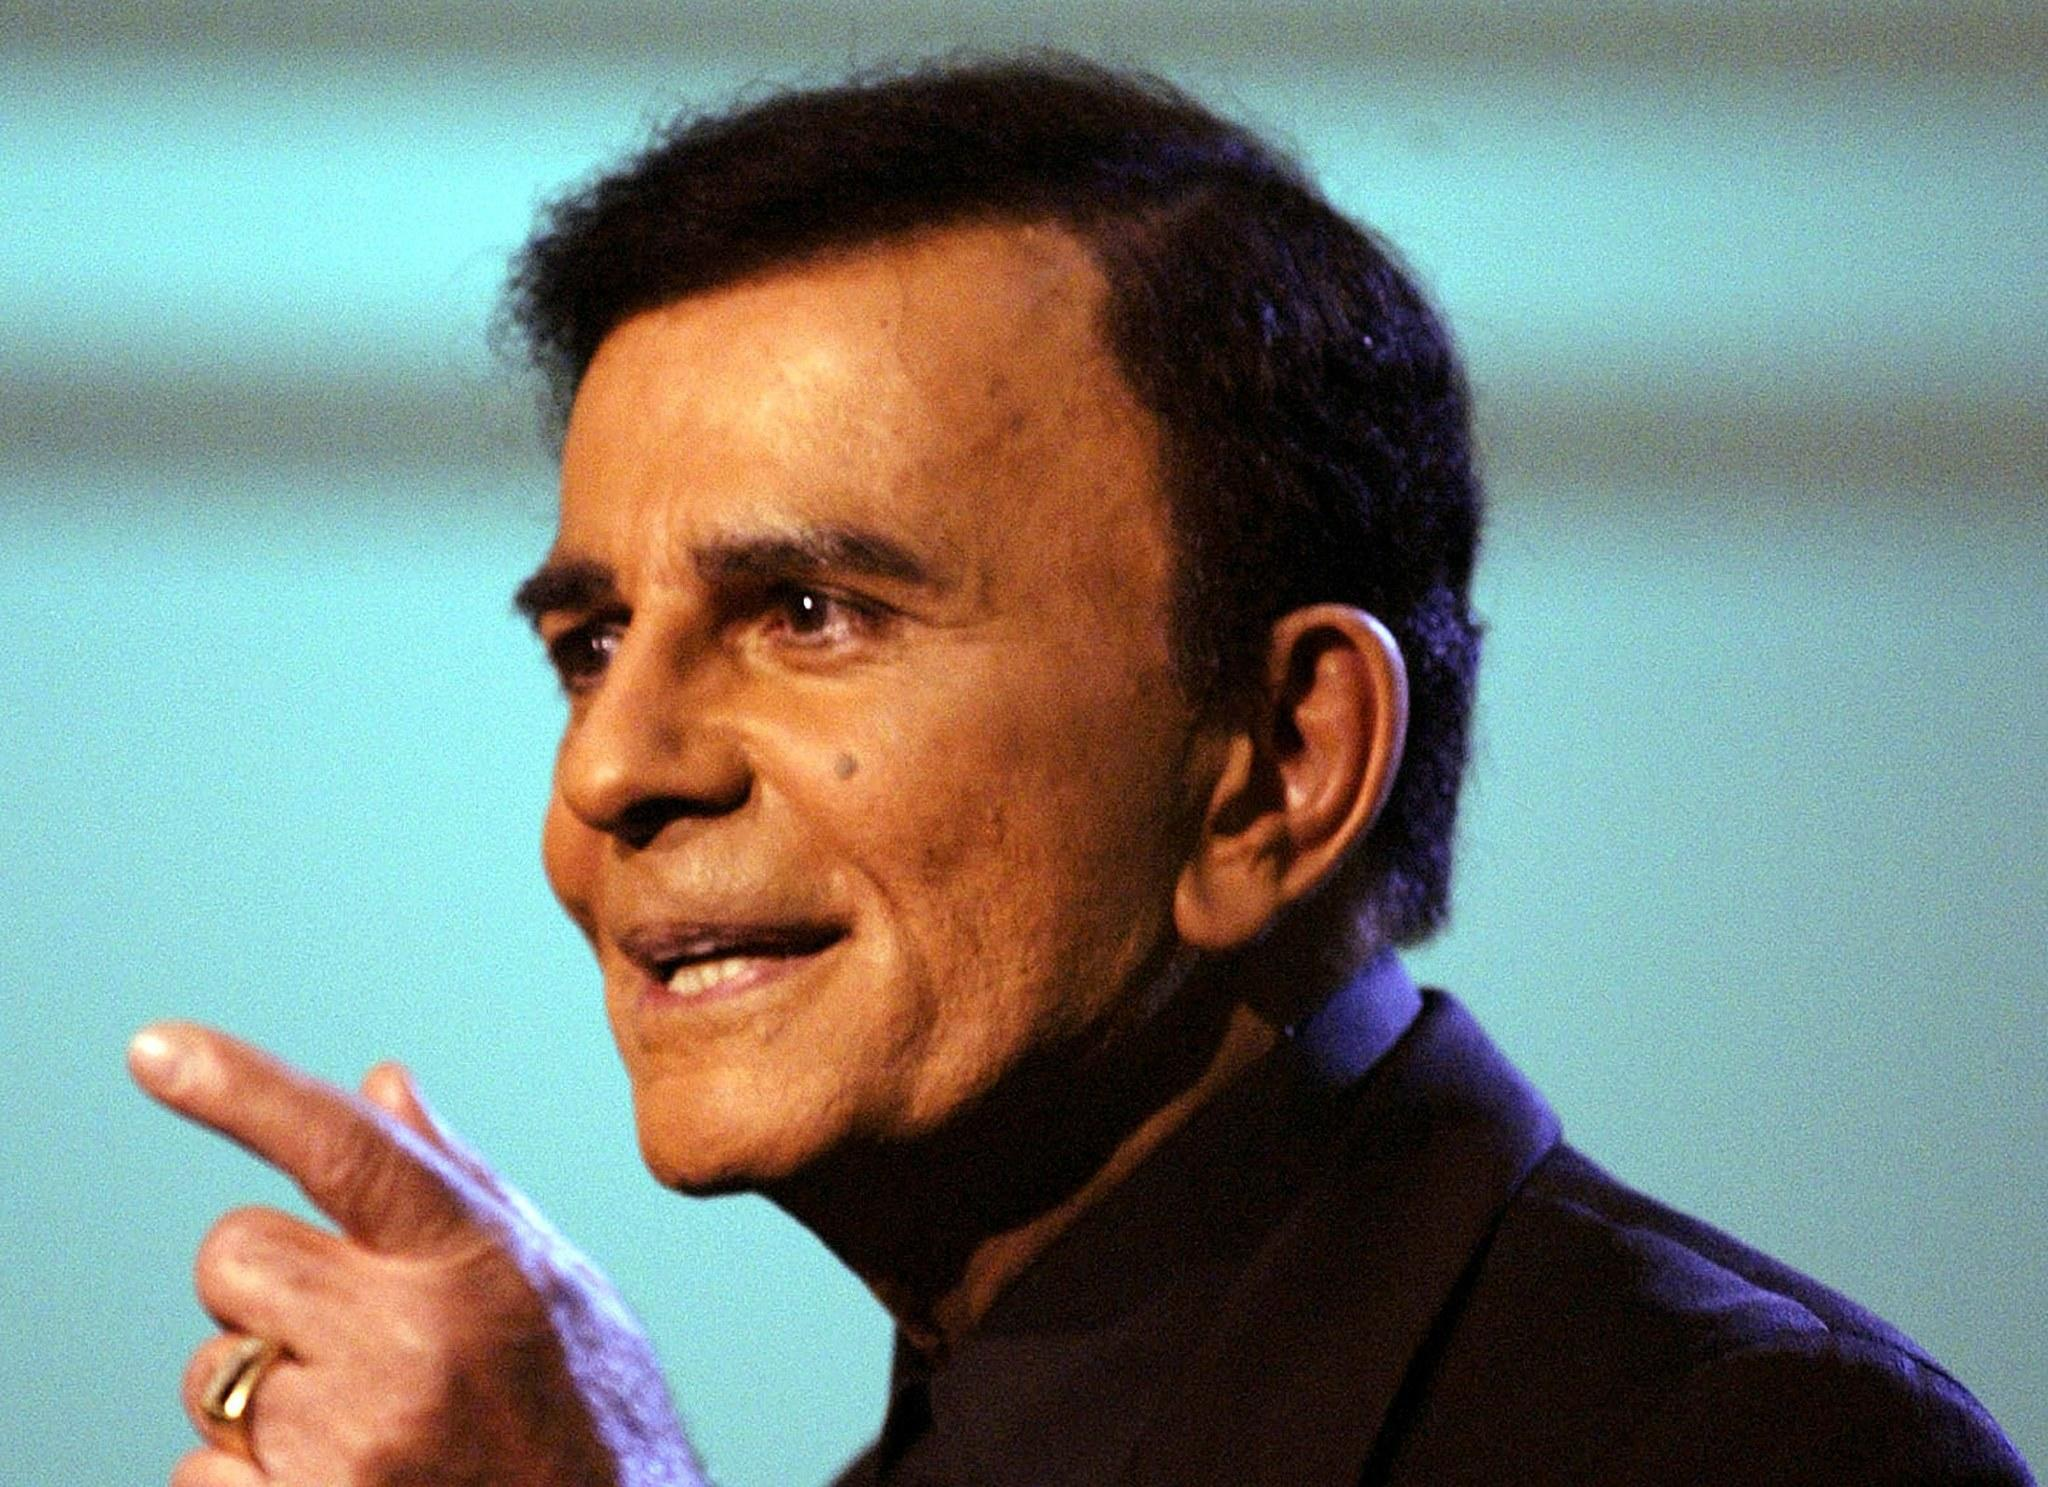 Television and radio personality Casey Kasem in critical condition in Washington hospital, June 5, 2014.